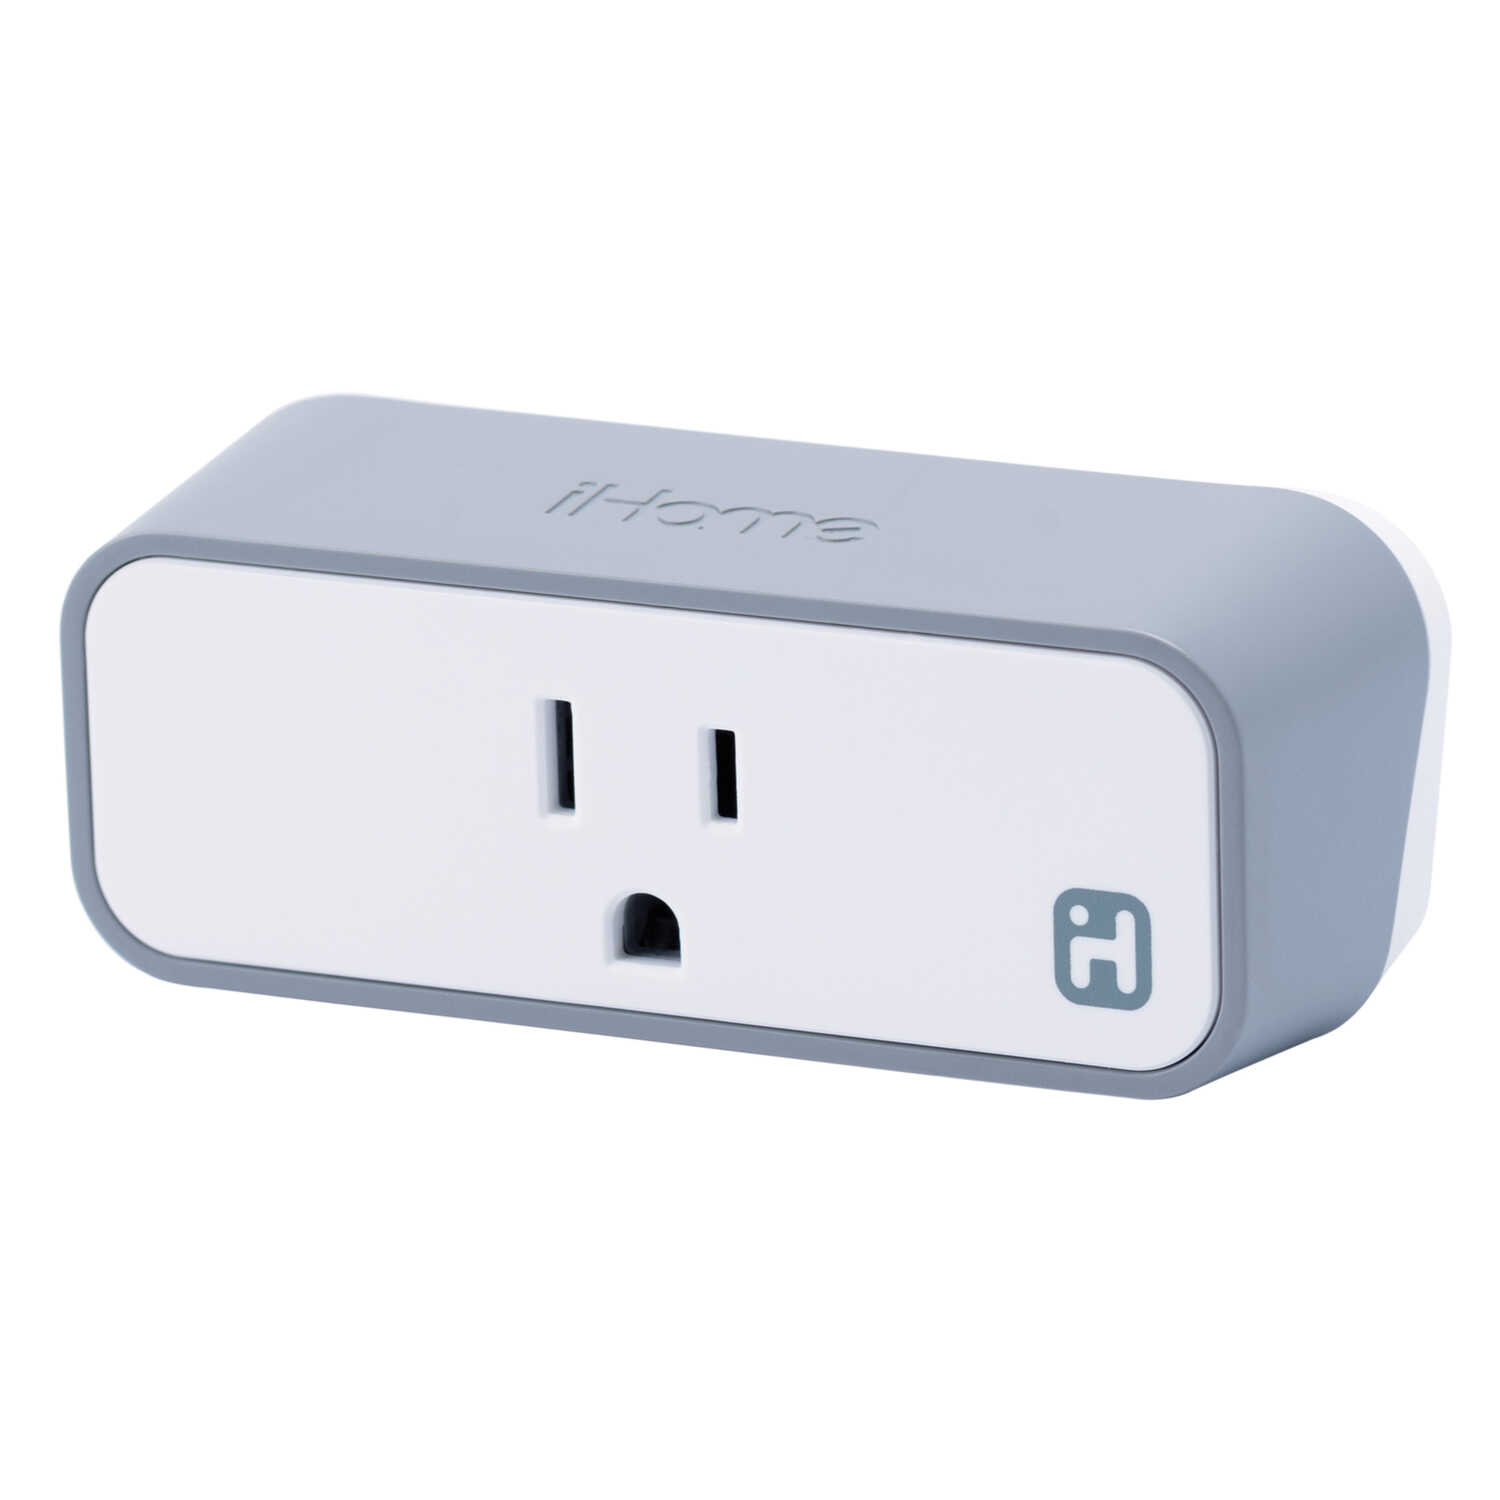 iHome  Commercial, Light Industrial, Residential  Plastic  Smart  Plug  Non-NEMA  White